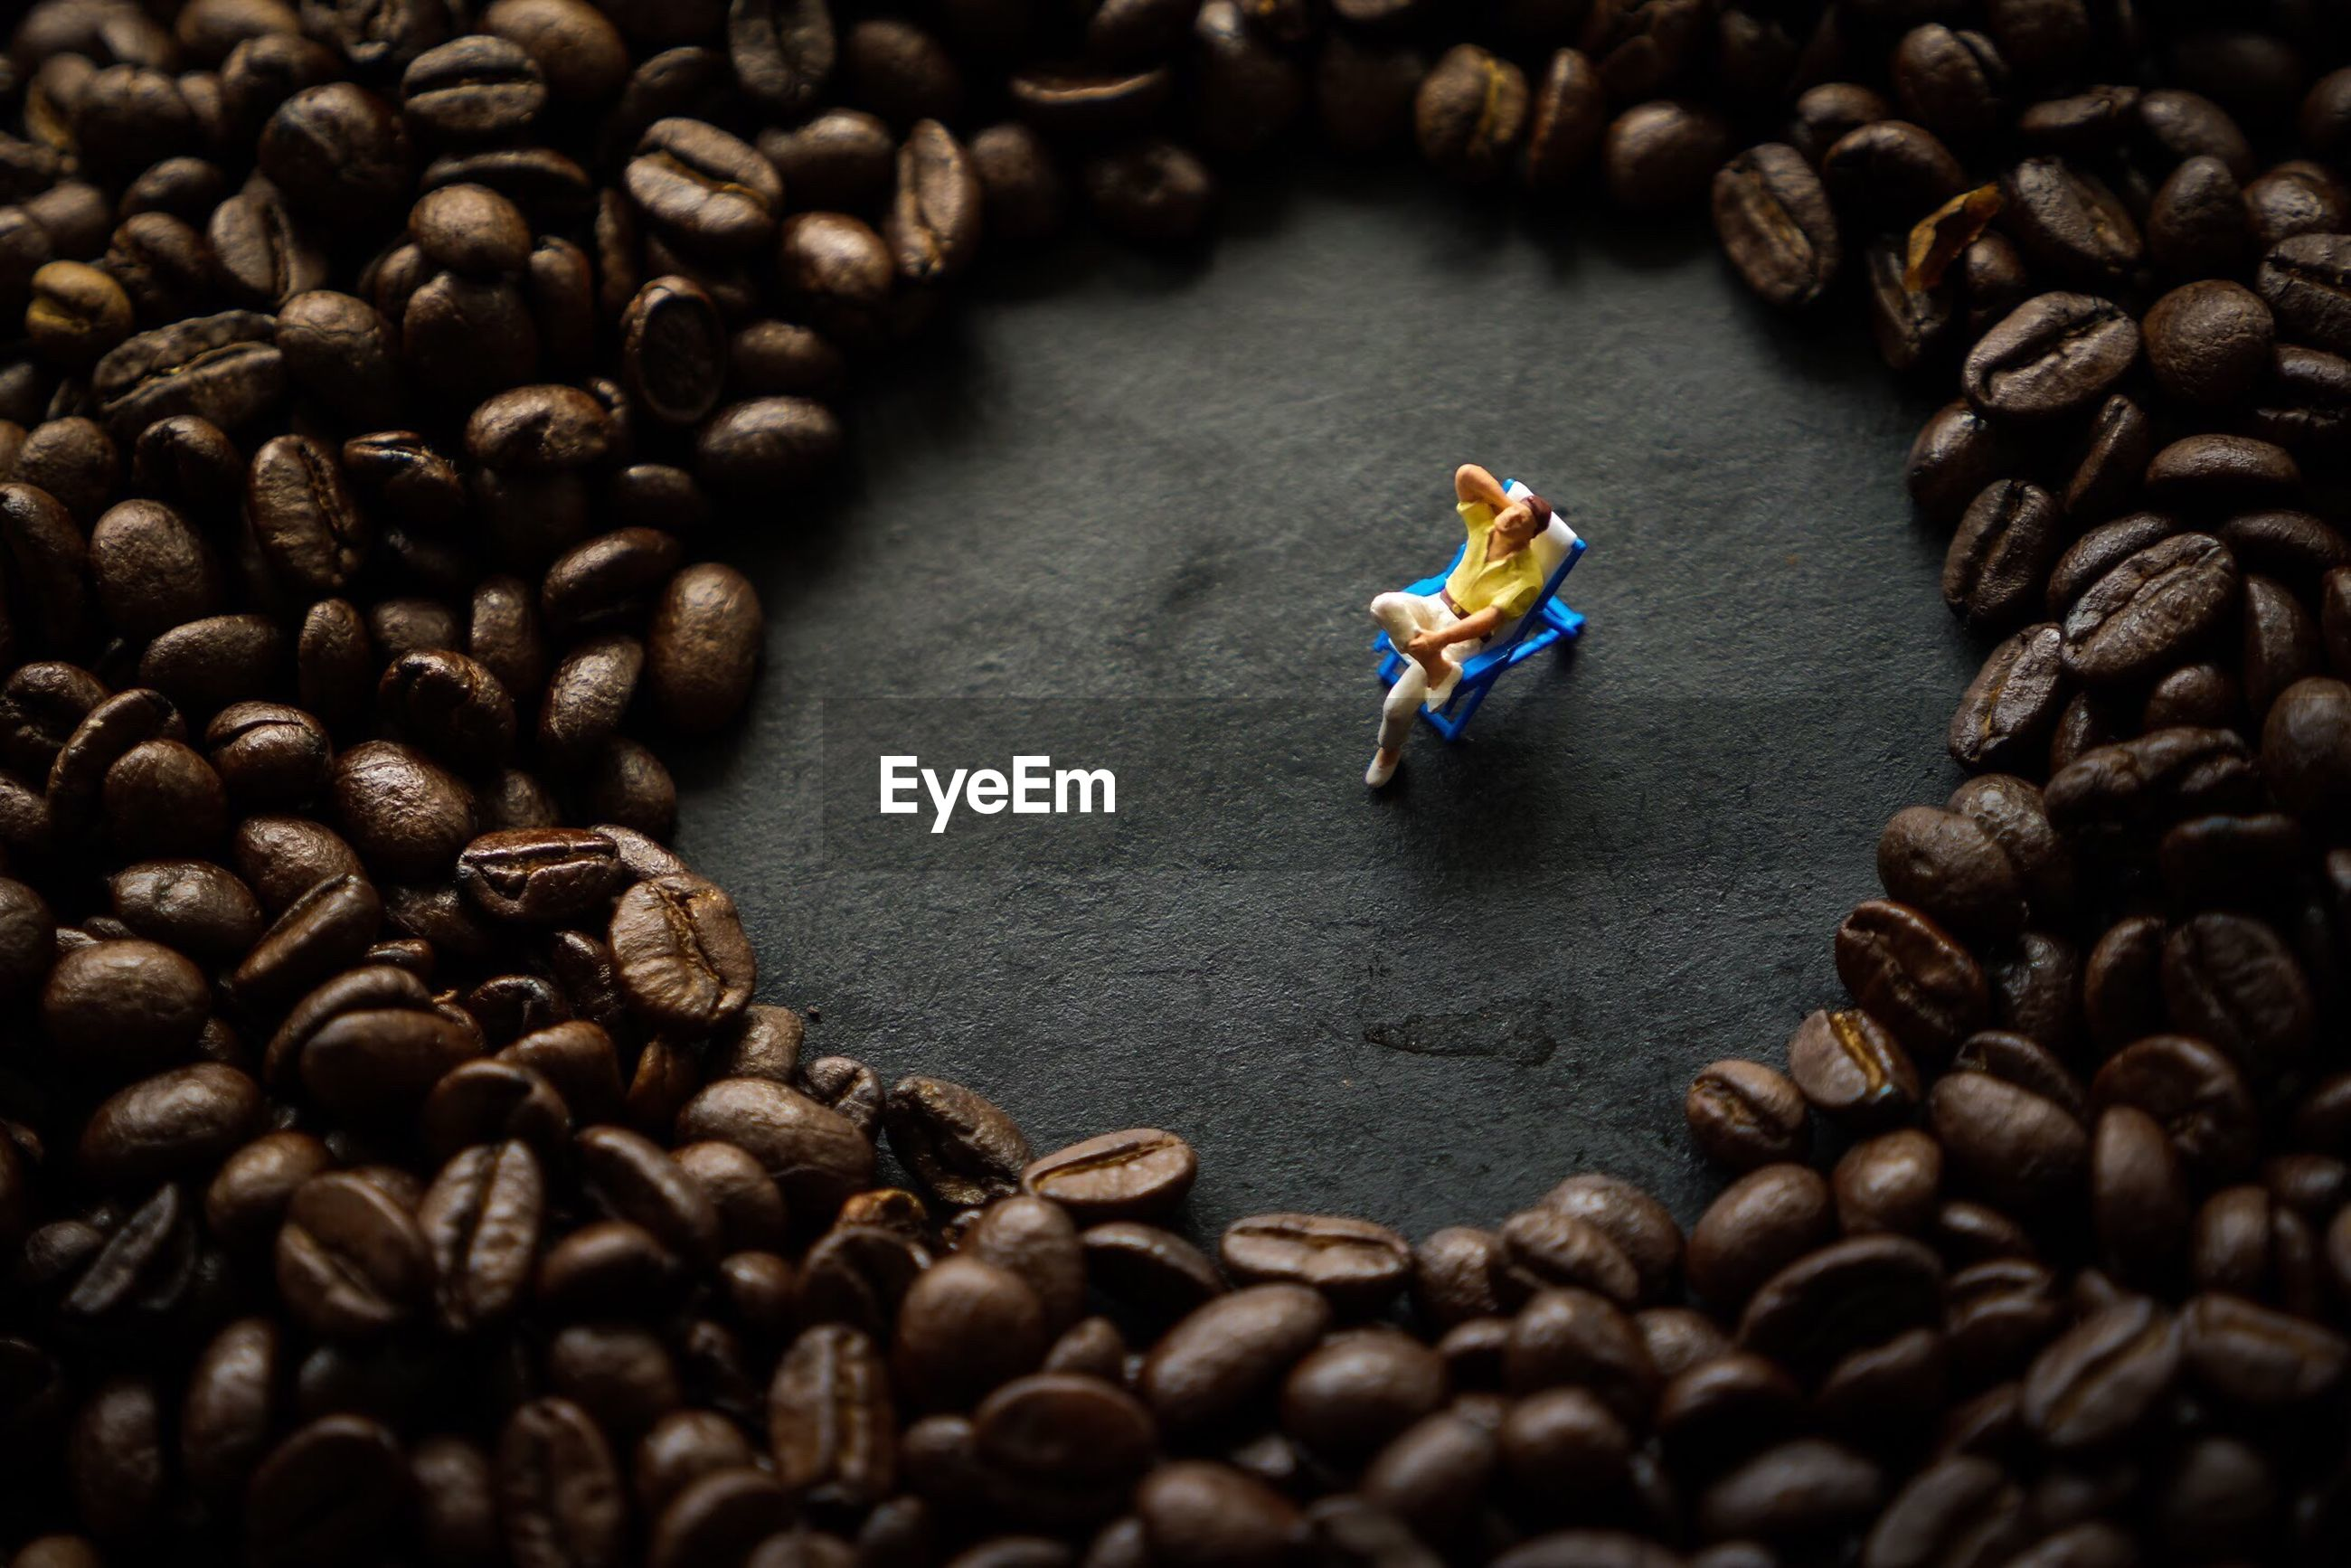 High angle view of figurine amidst coffee beans on table